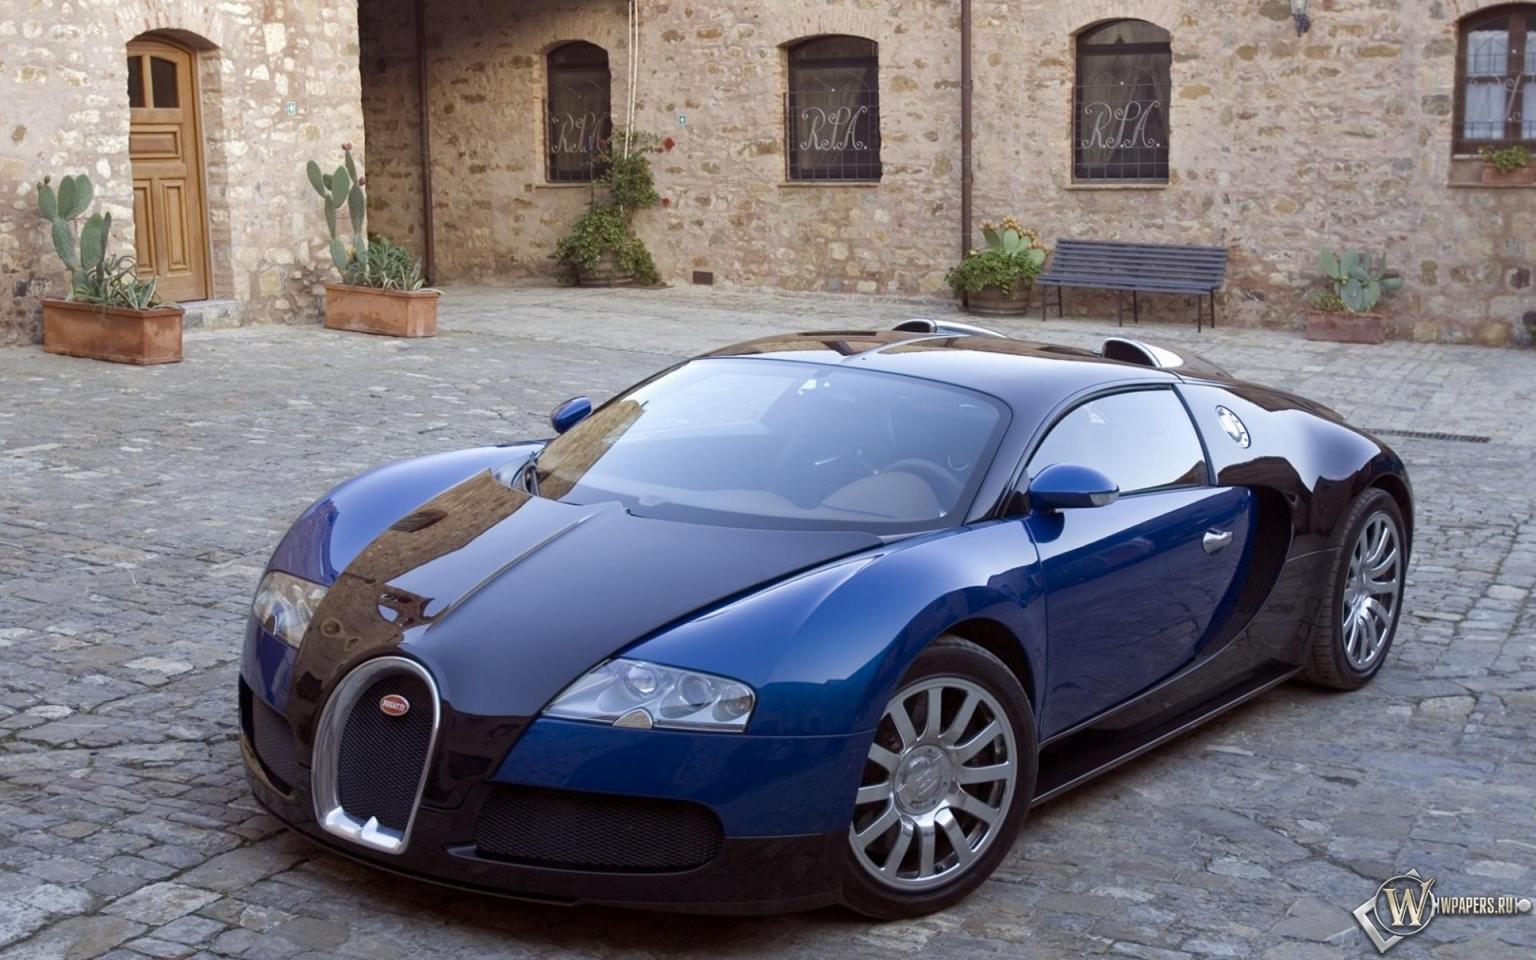 bugatti veyron blue car bugatti veyron 1536 960 16 10. Black Bedroom Furniture Sets. Home Design Ideas